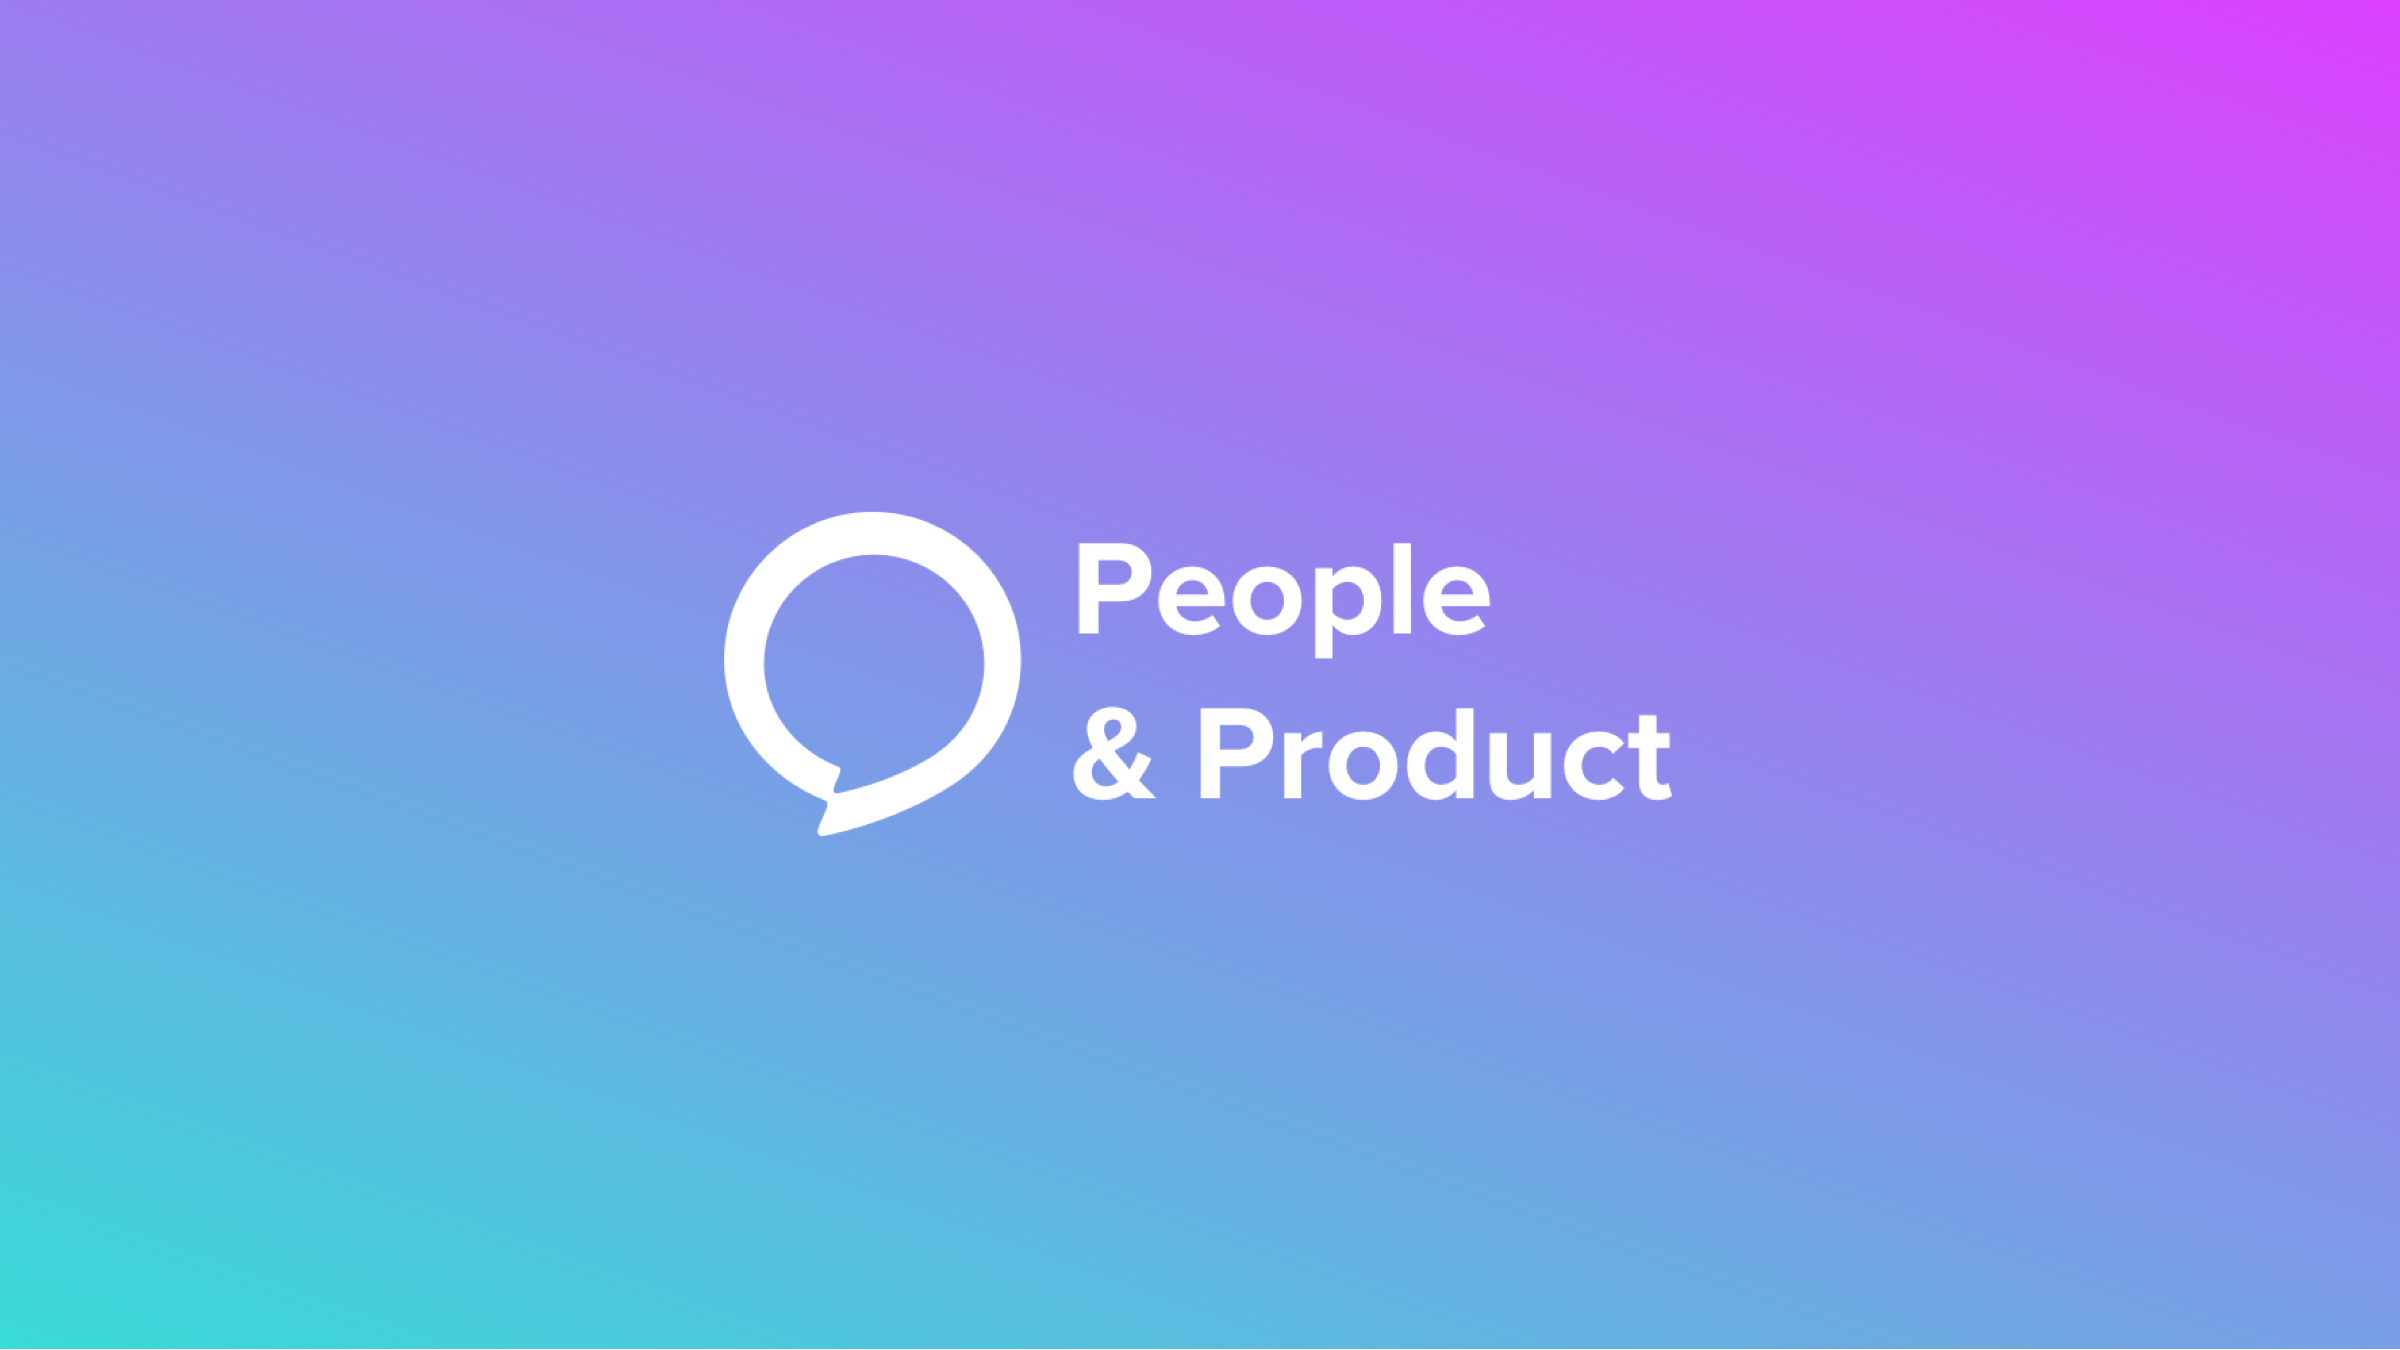 People & Product